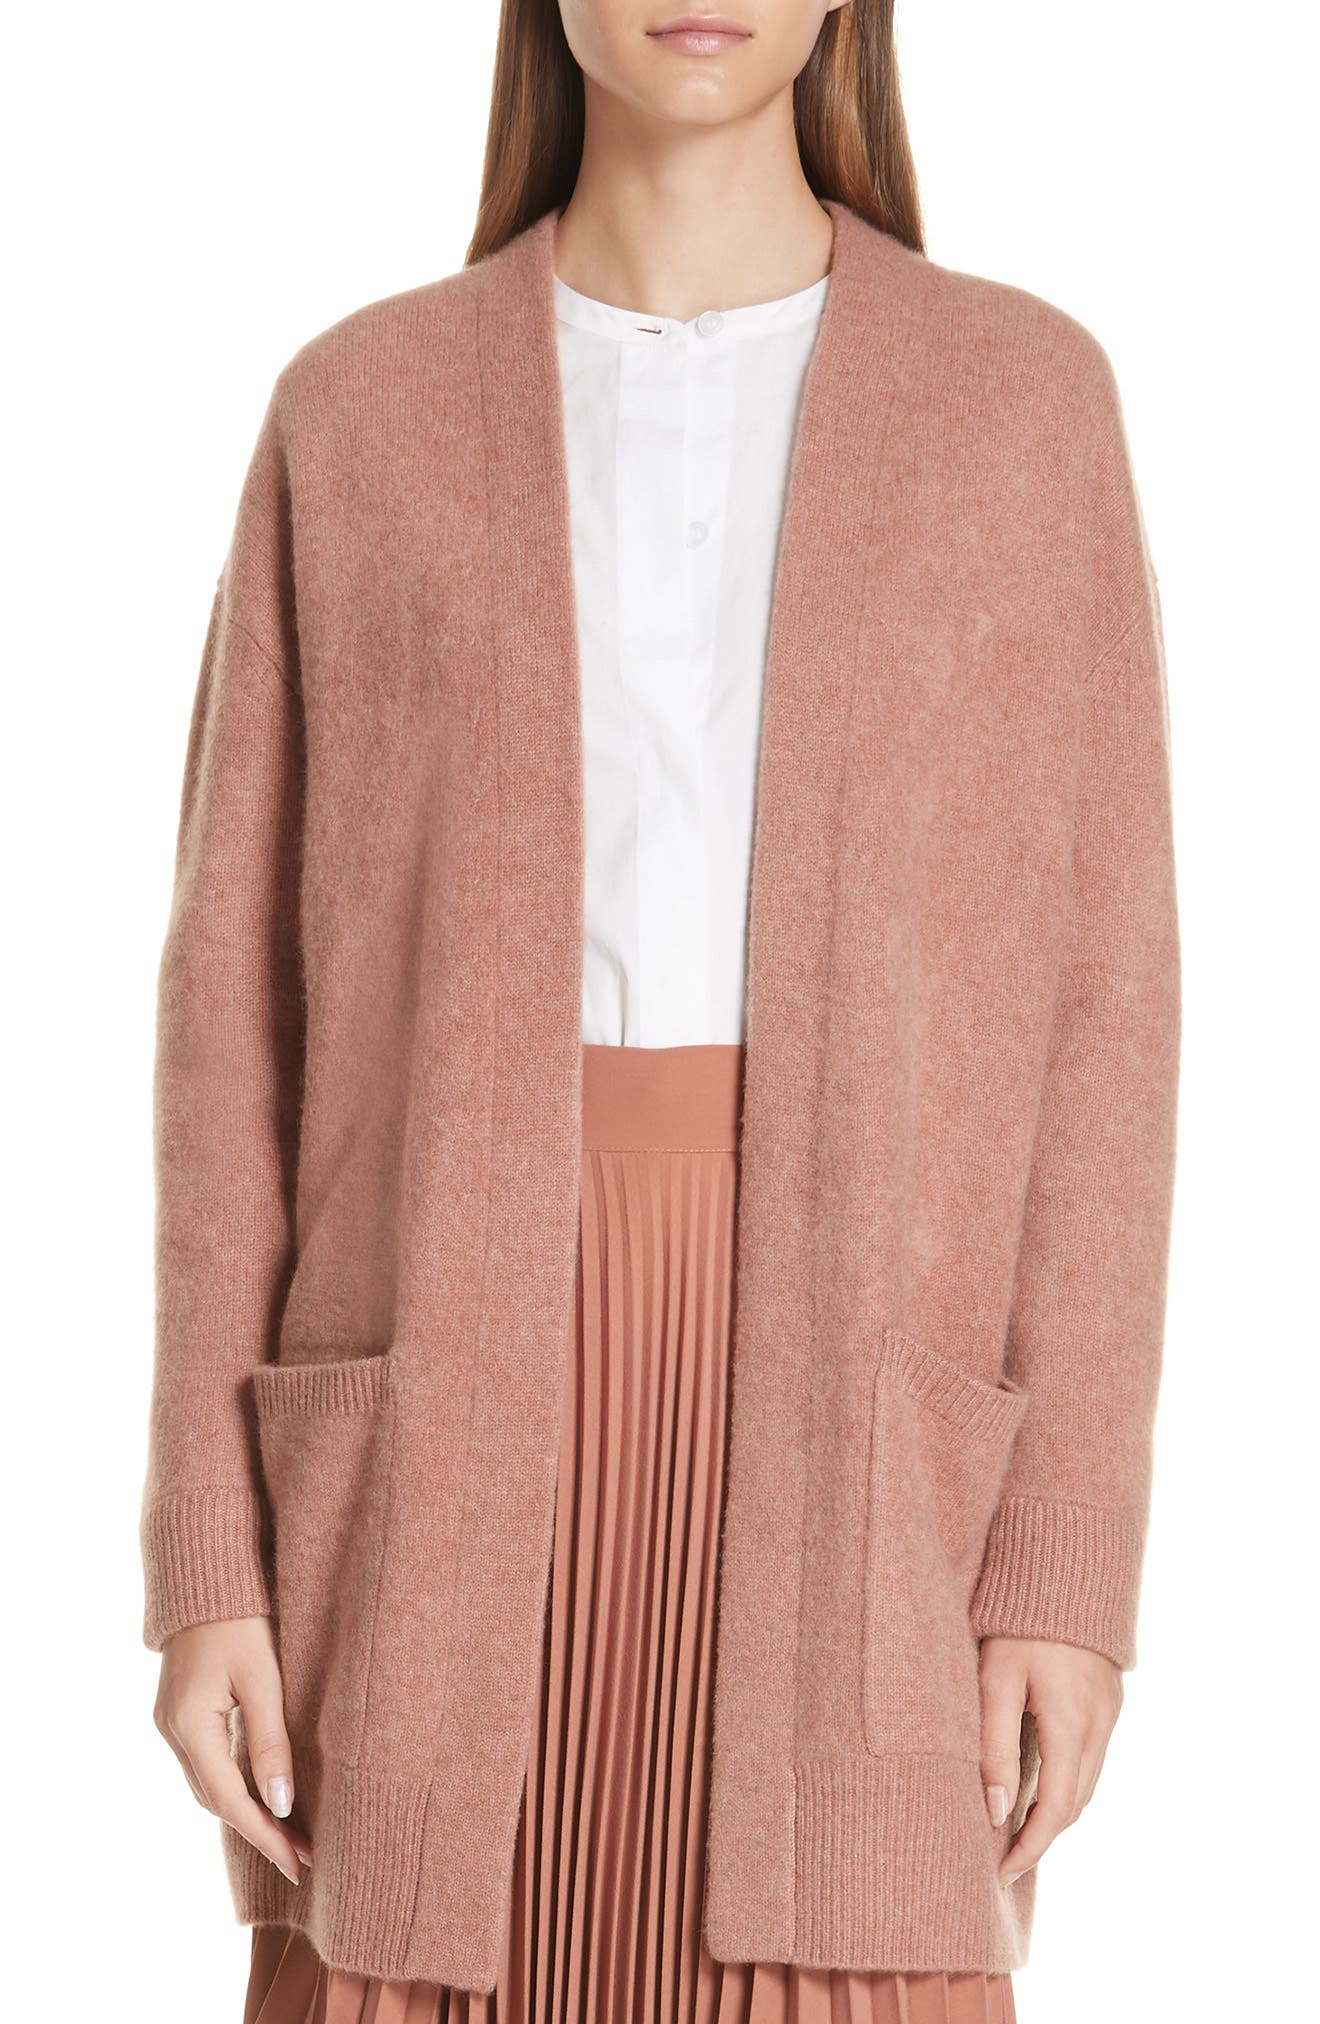 Sweaters Nordstrom Vince Vince For Women Sweaters dvZFqwS